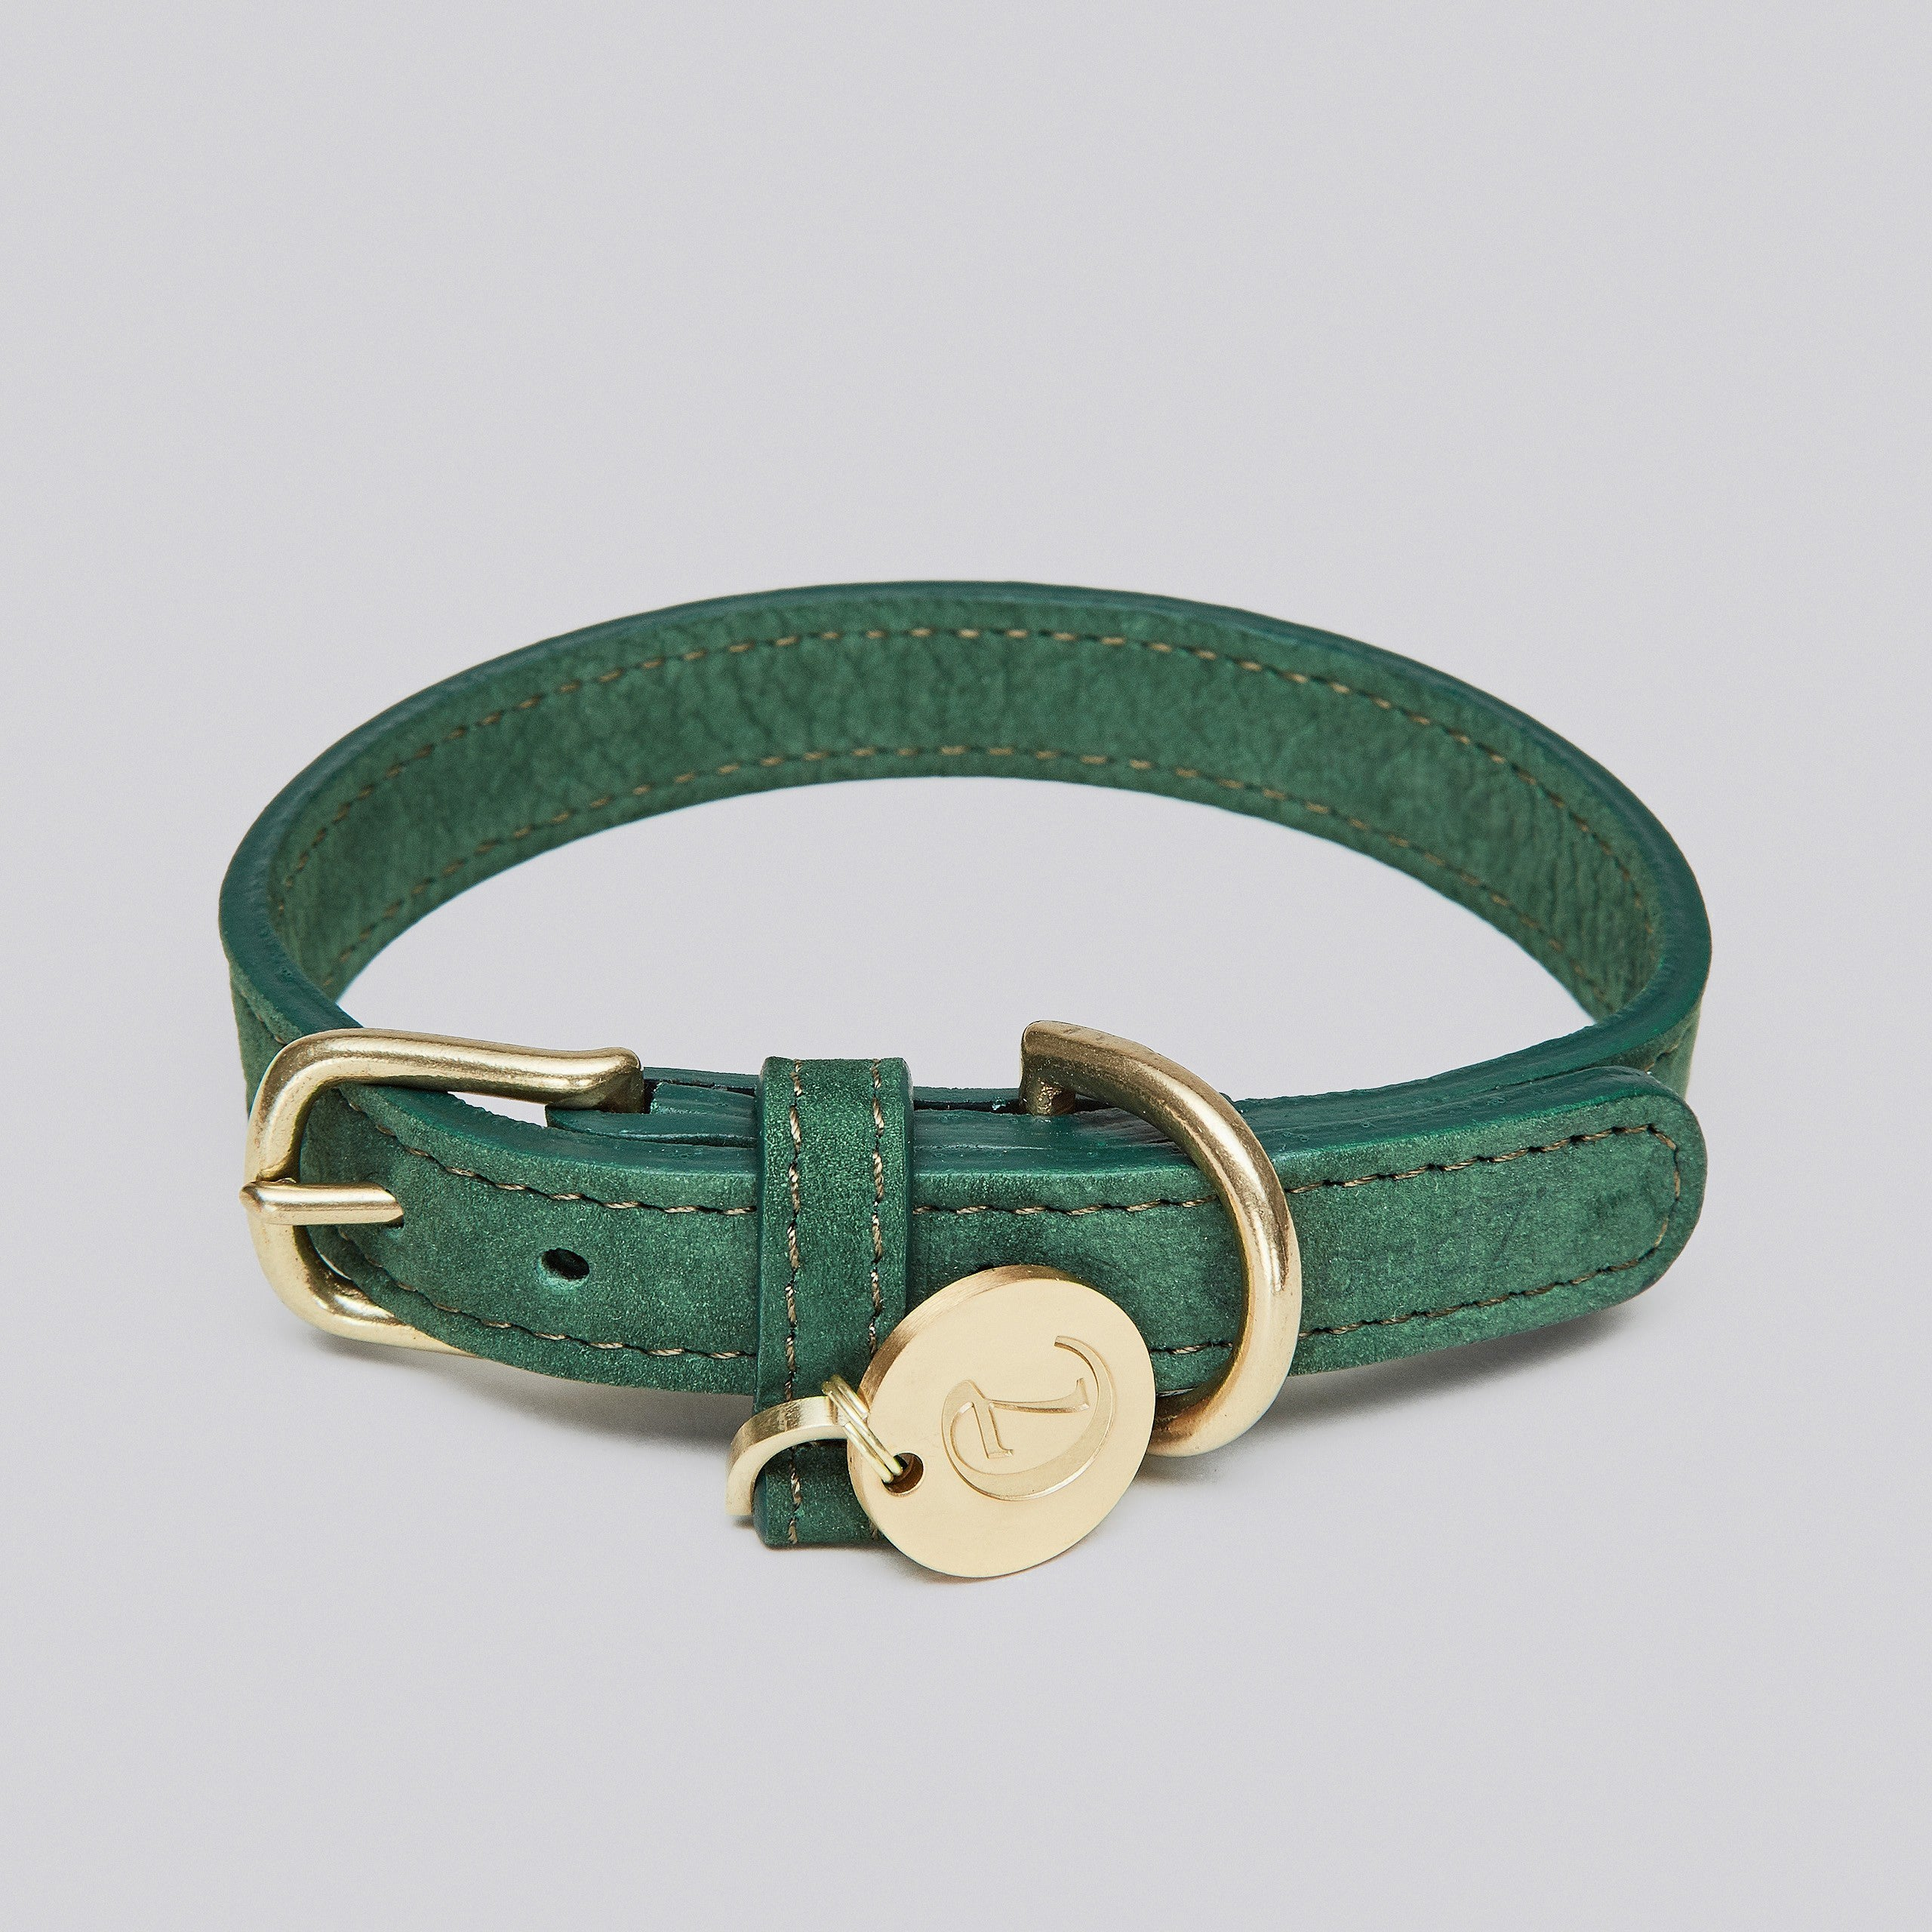 Cloud7 Tiergarten Park Green Leather Dog Collar